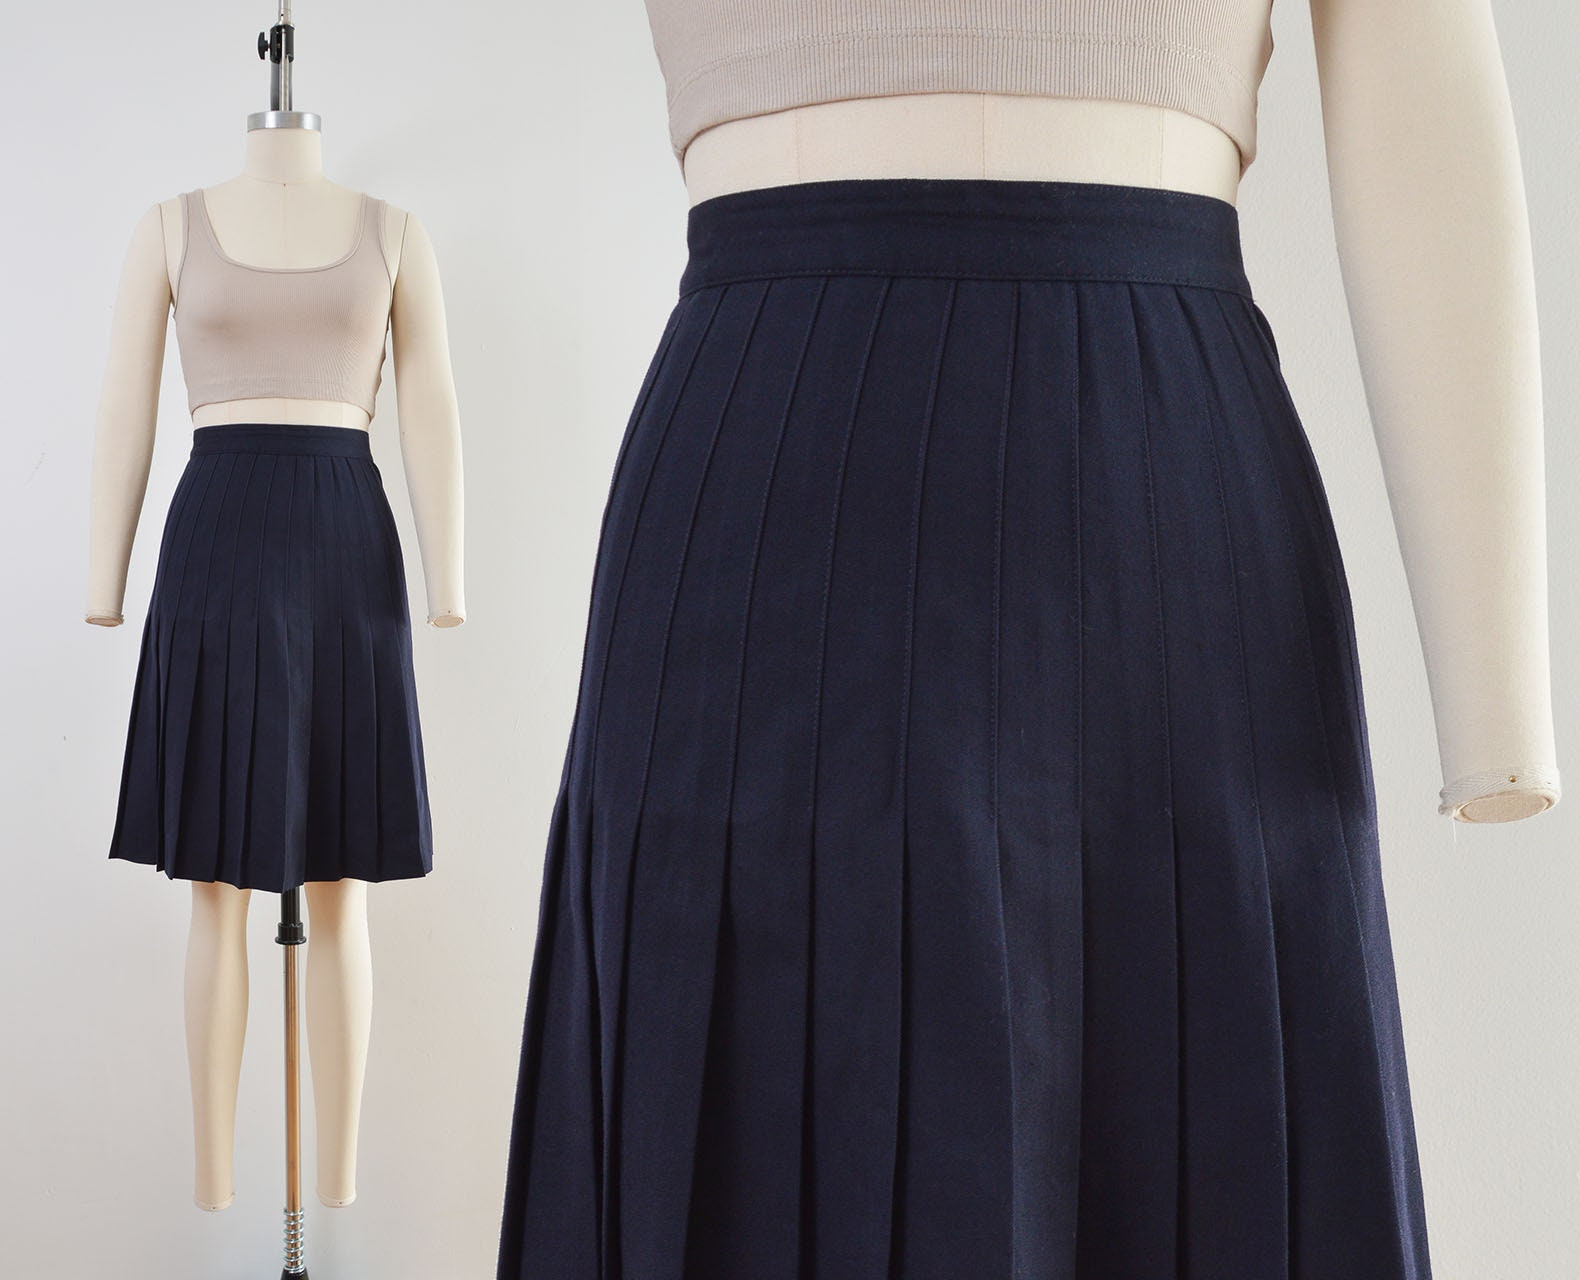 80s Dresses | Casual to Party Dresses Vintage Navy Wool Skirt  Pleated Mini School Girl Academia Tennis Size S $40.00 AT vintagedancer.com